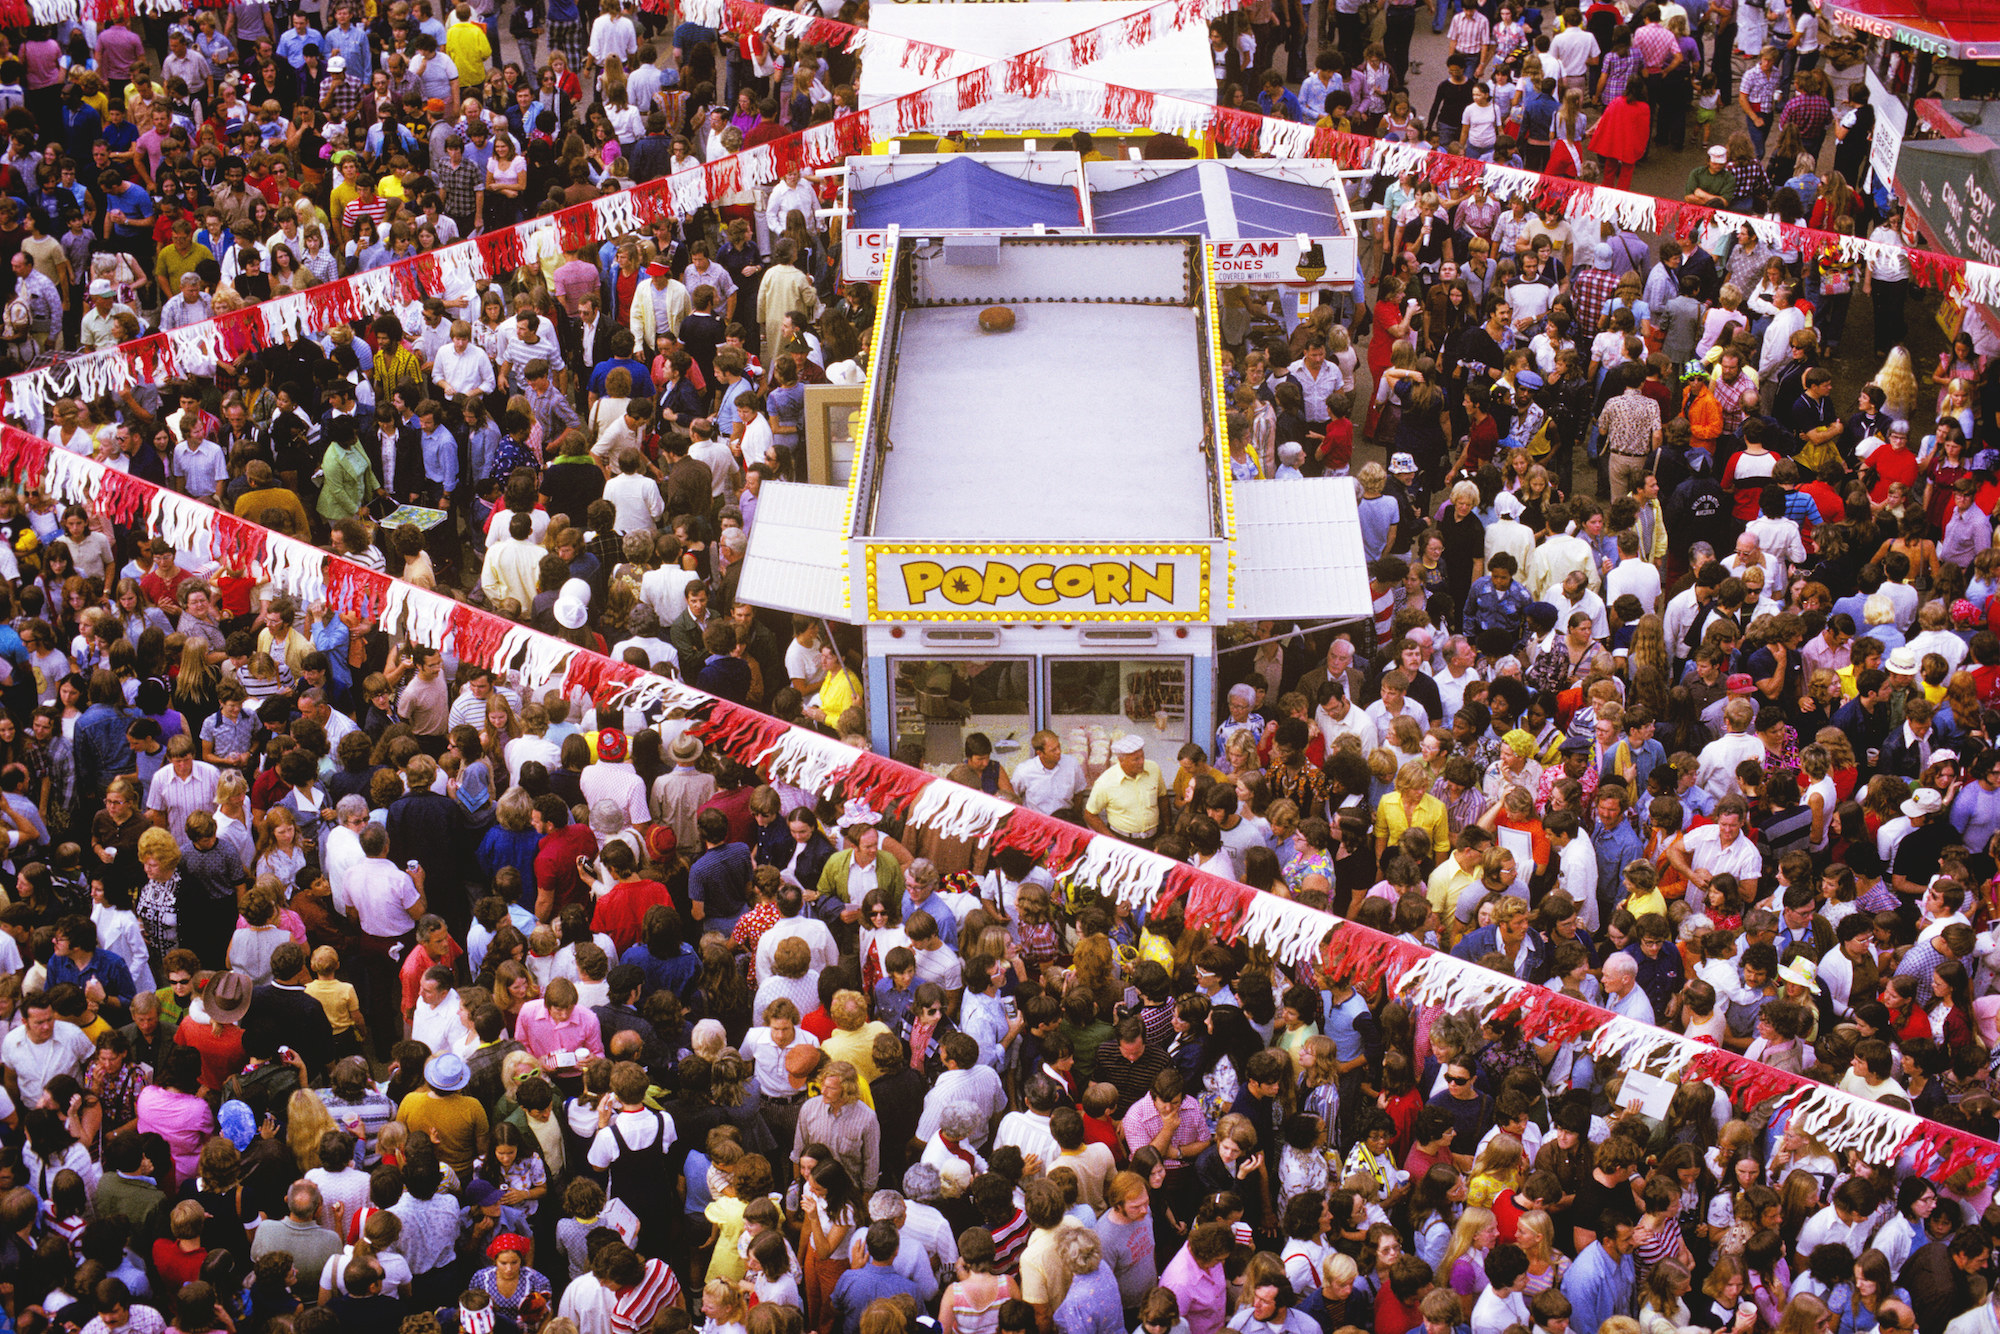 A large crowd of people attends a fair